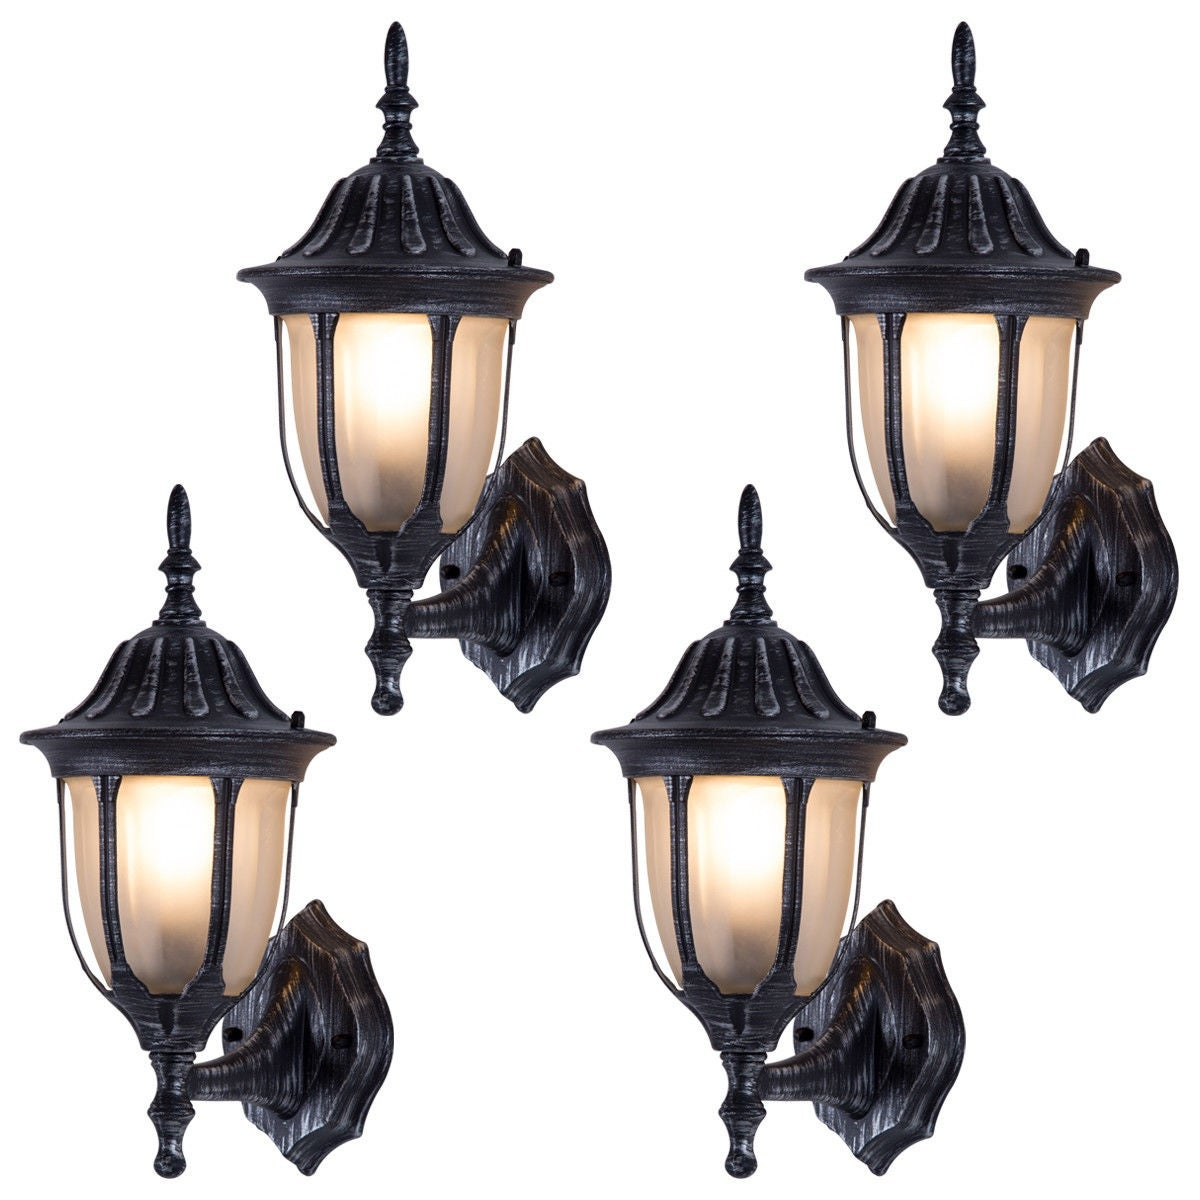 Shop Black Friday Deals On Costway Outdoor Garages Front Porch Light Exterior Wall Light Fixtures 15 H X 6 5 W Overstock 21271372